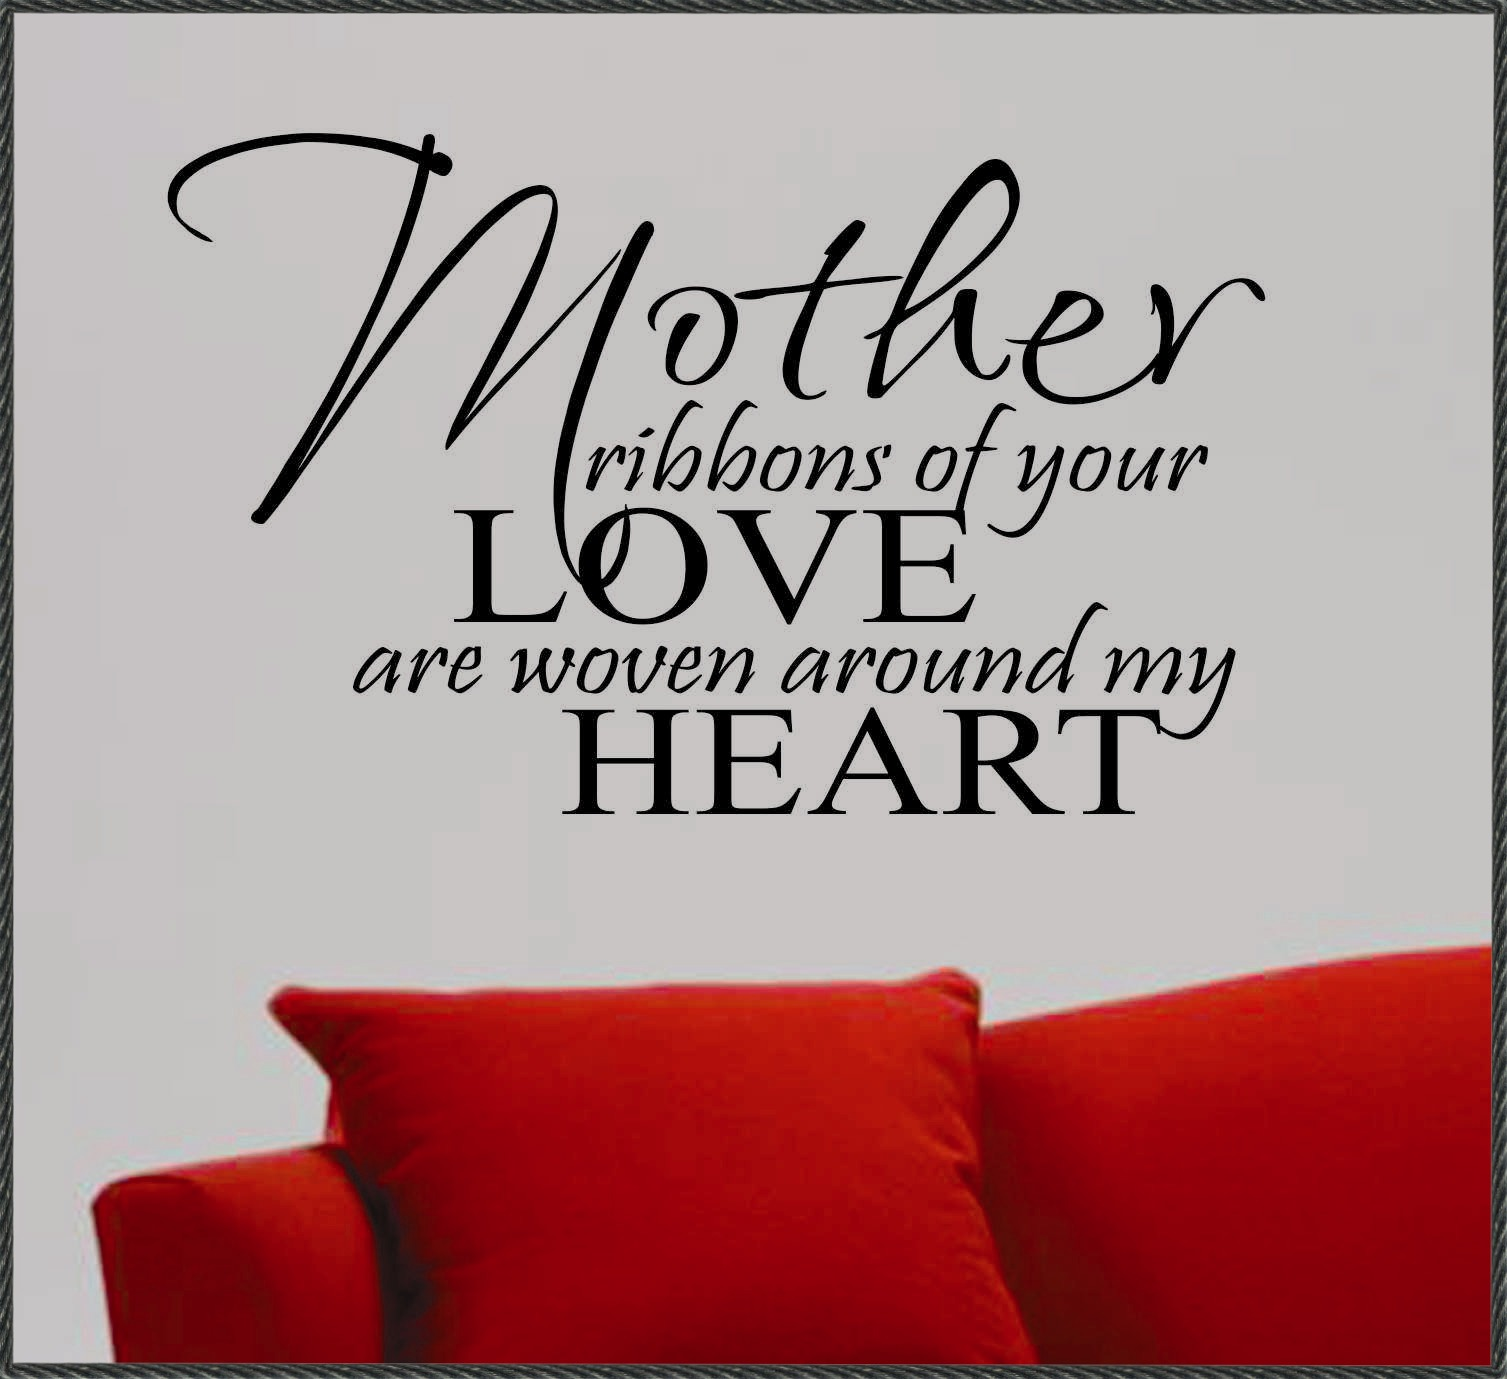 We Love You Mom Quotes Magnificent Love Mom Wallpaper With Quote  Inspiring Quotes And Words In Life